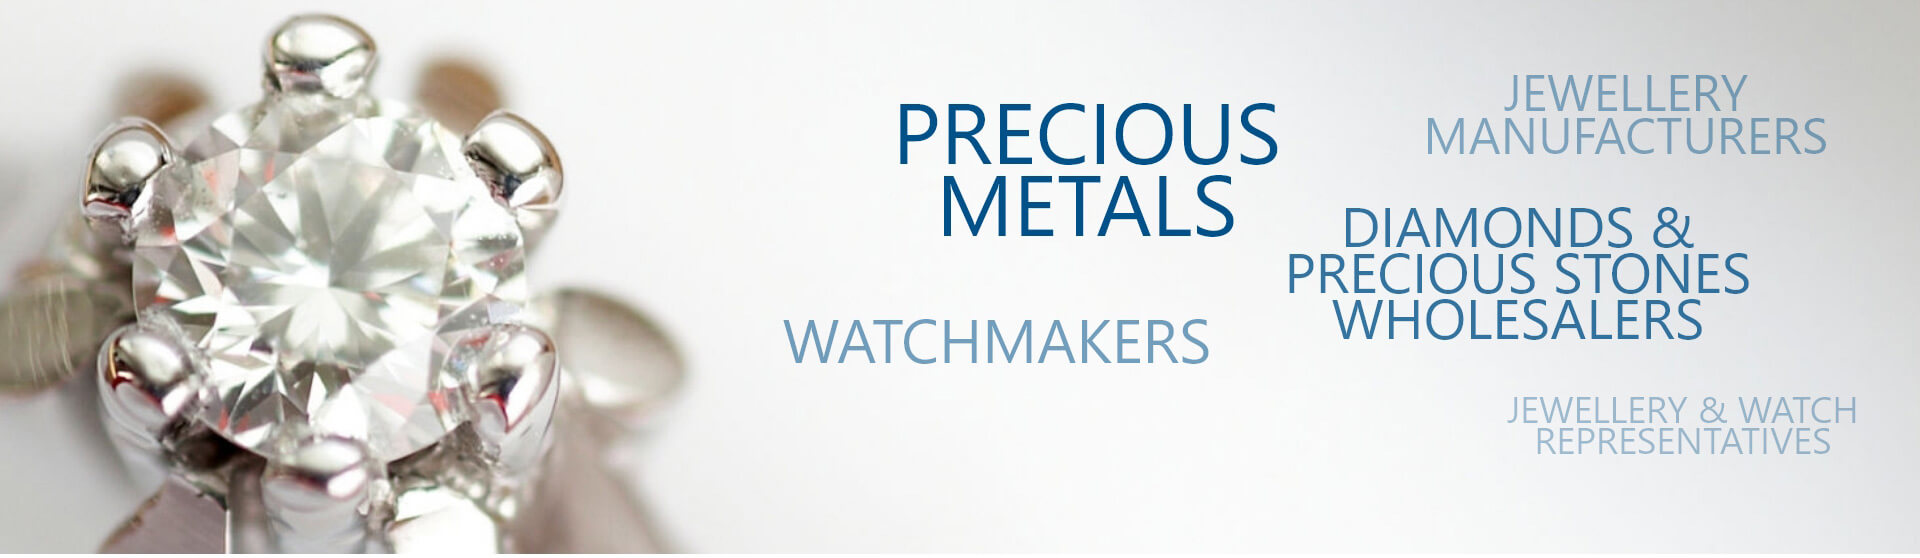 Precious -Metals - WatchMakers